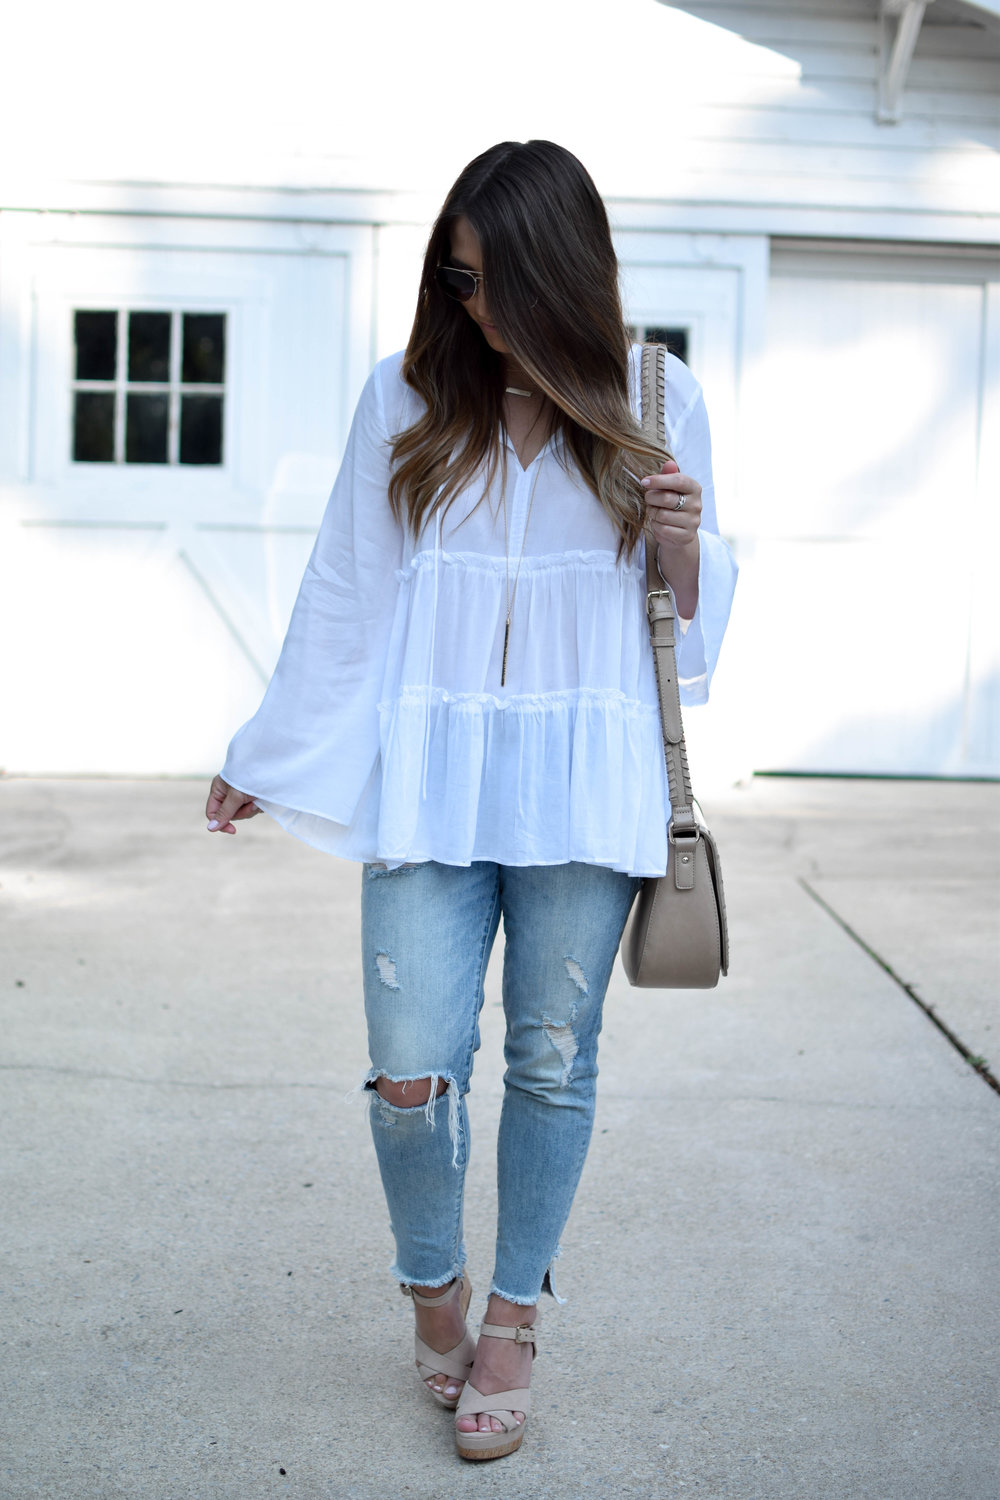 loft flowy white top, light wash distressed denim, aldo nude wedges, sole society cross body bag, summer outfit idea